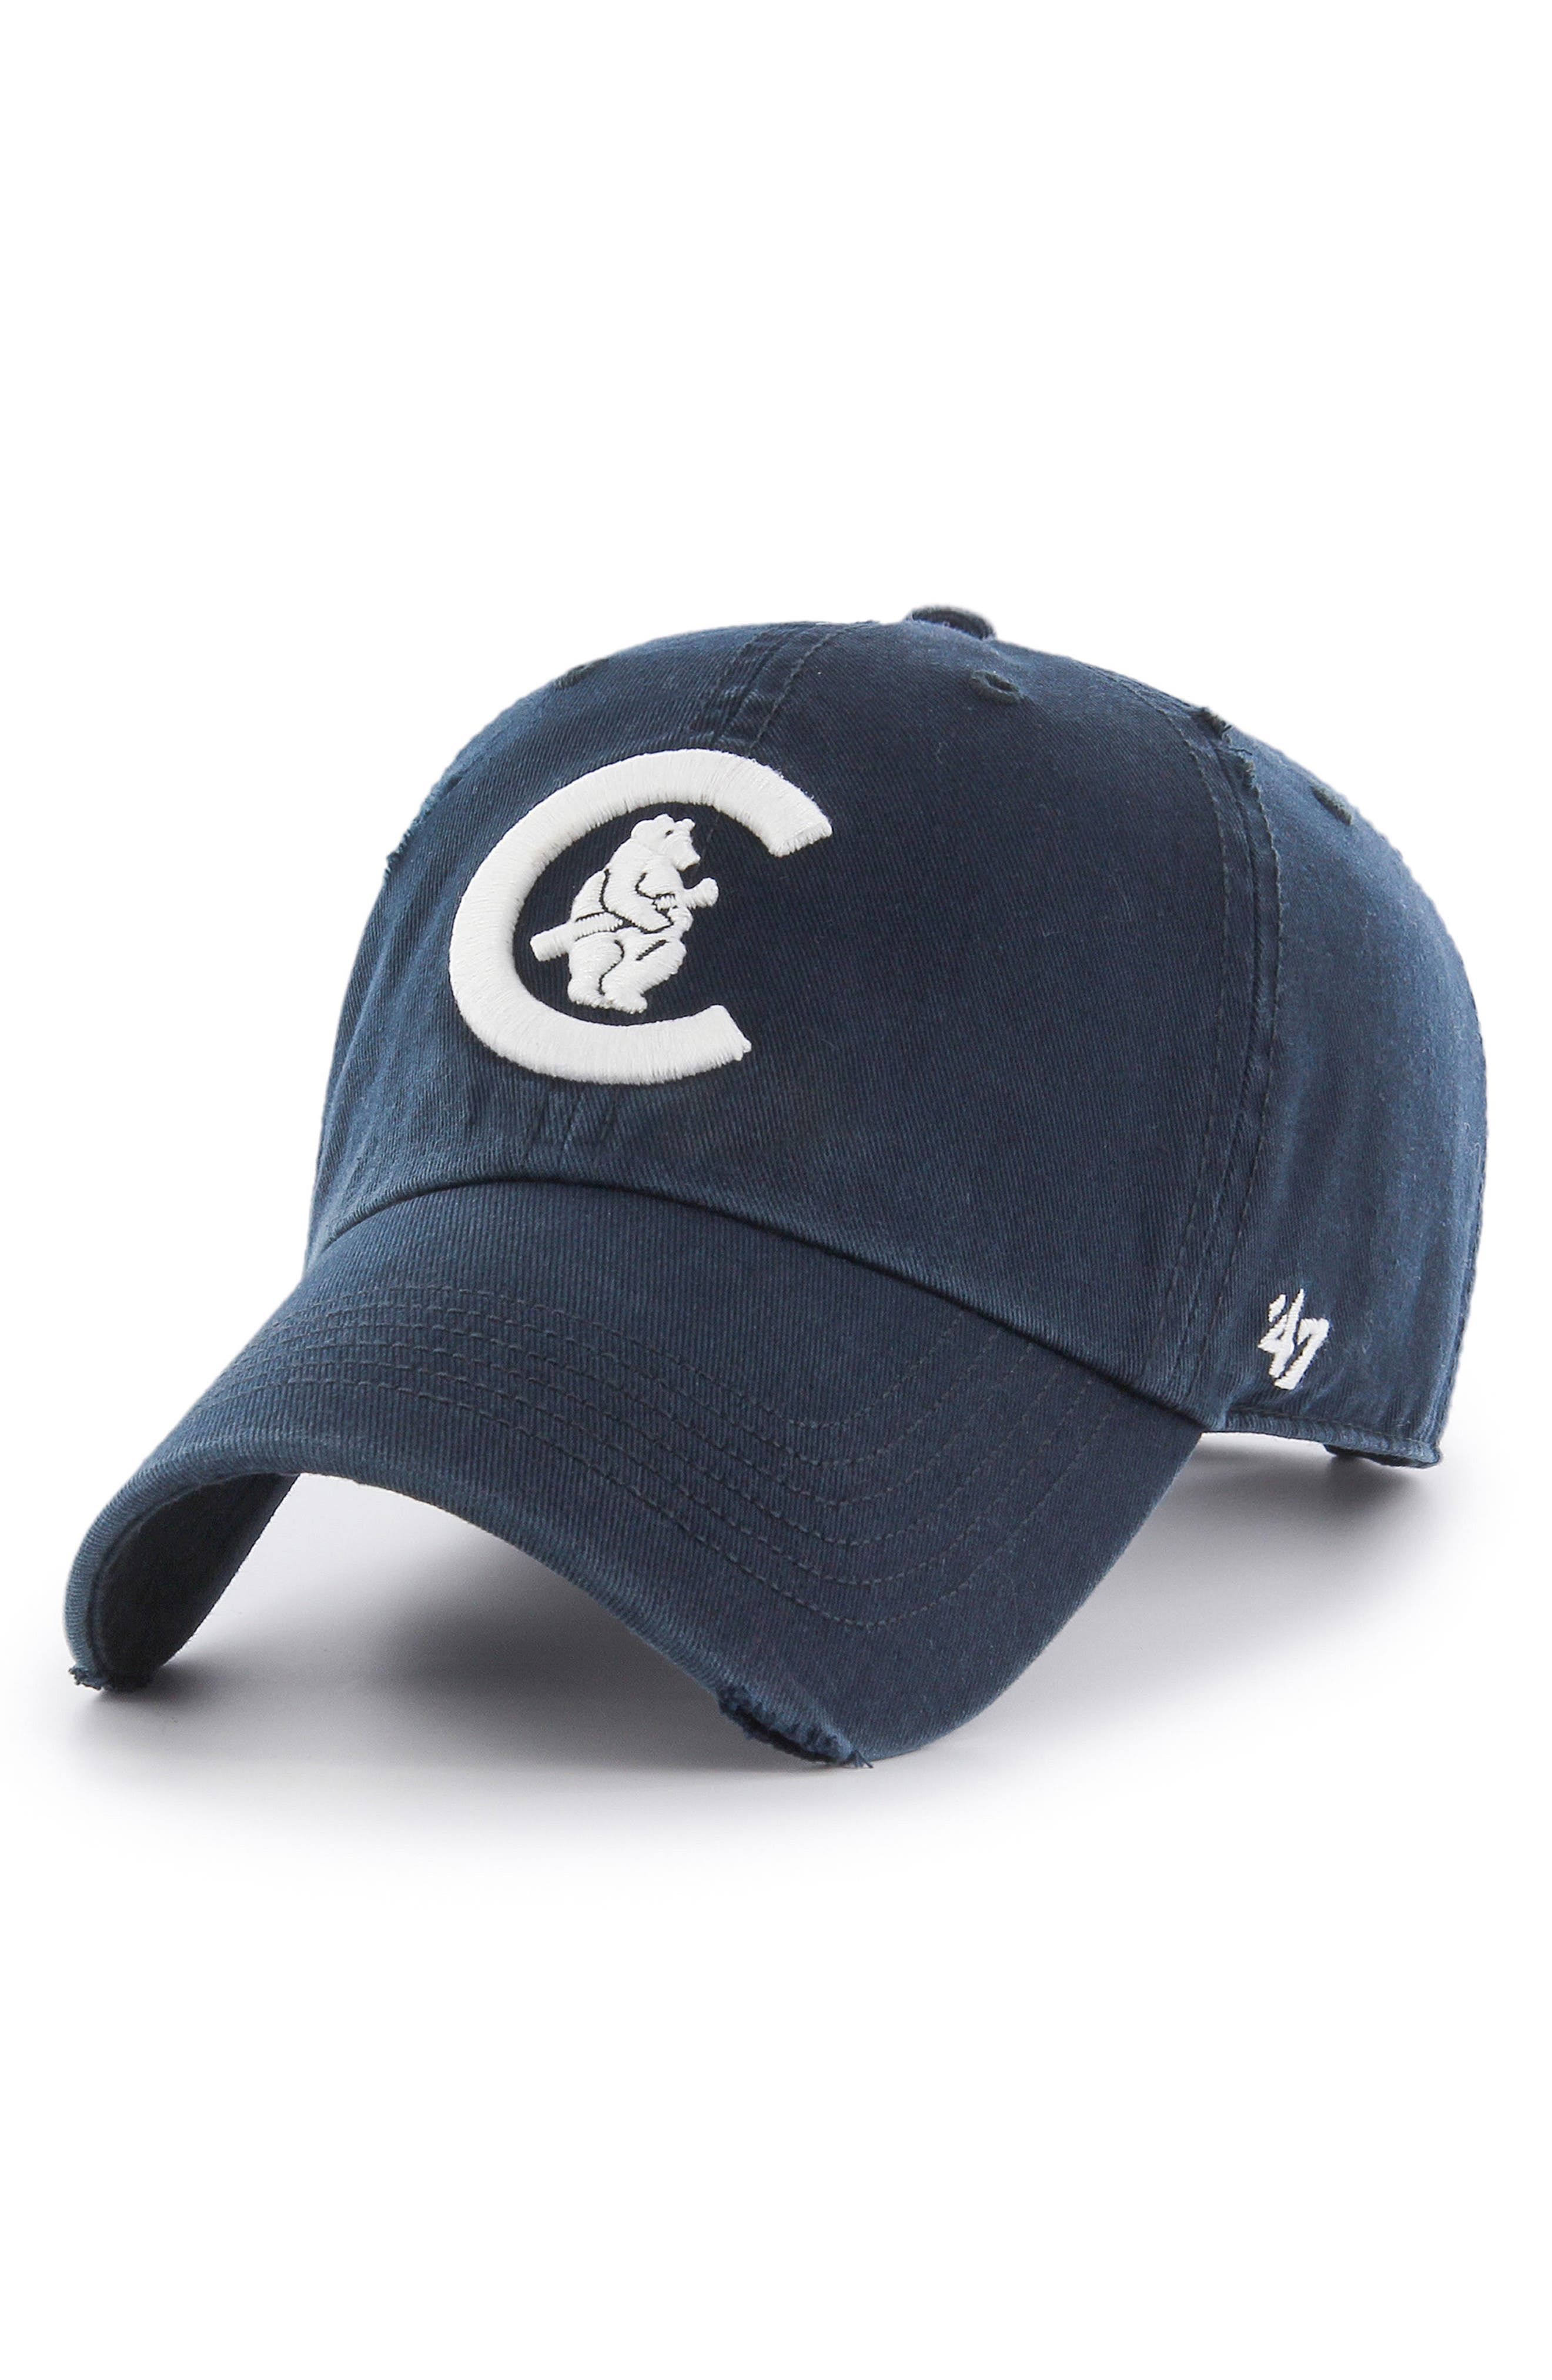 47 Brand Cooperstown Ridge Chicago Cubs Baseball Cap,                         Main,                         color, Navy